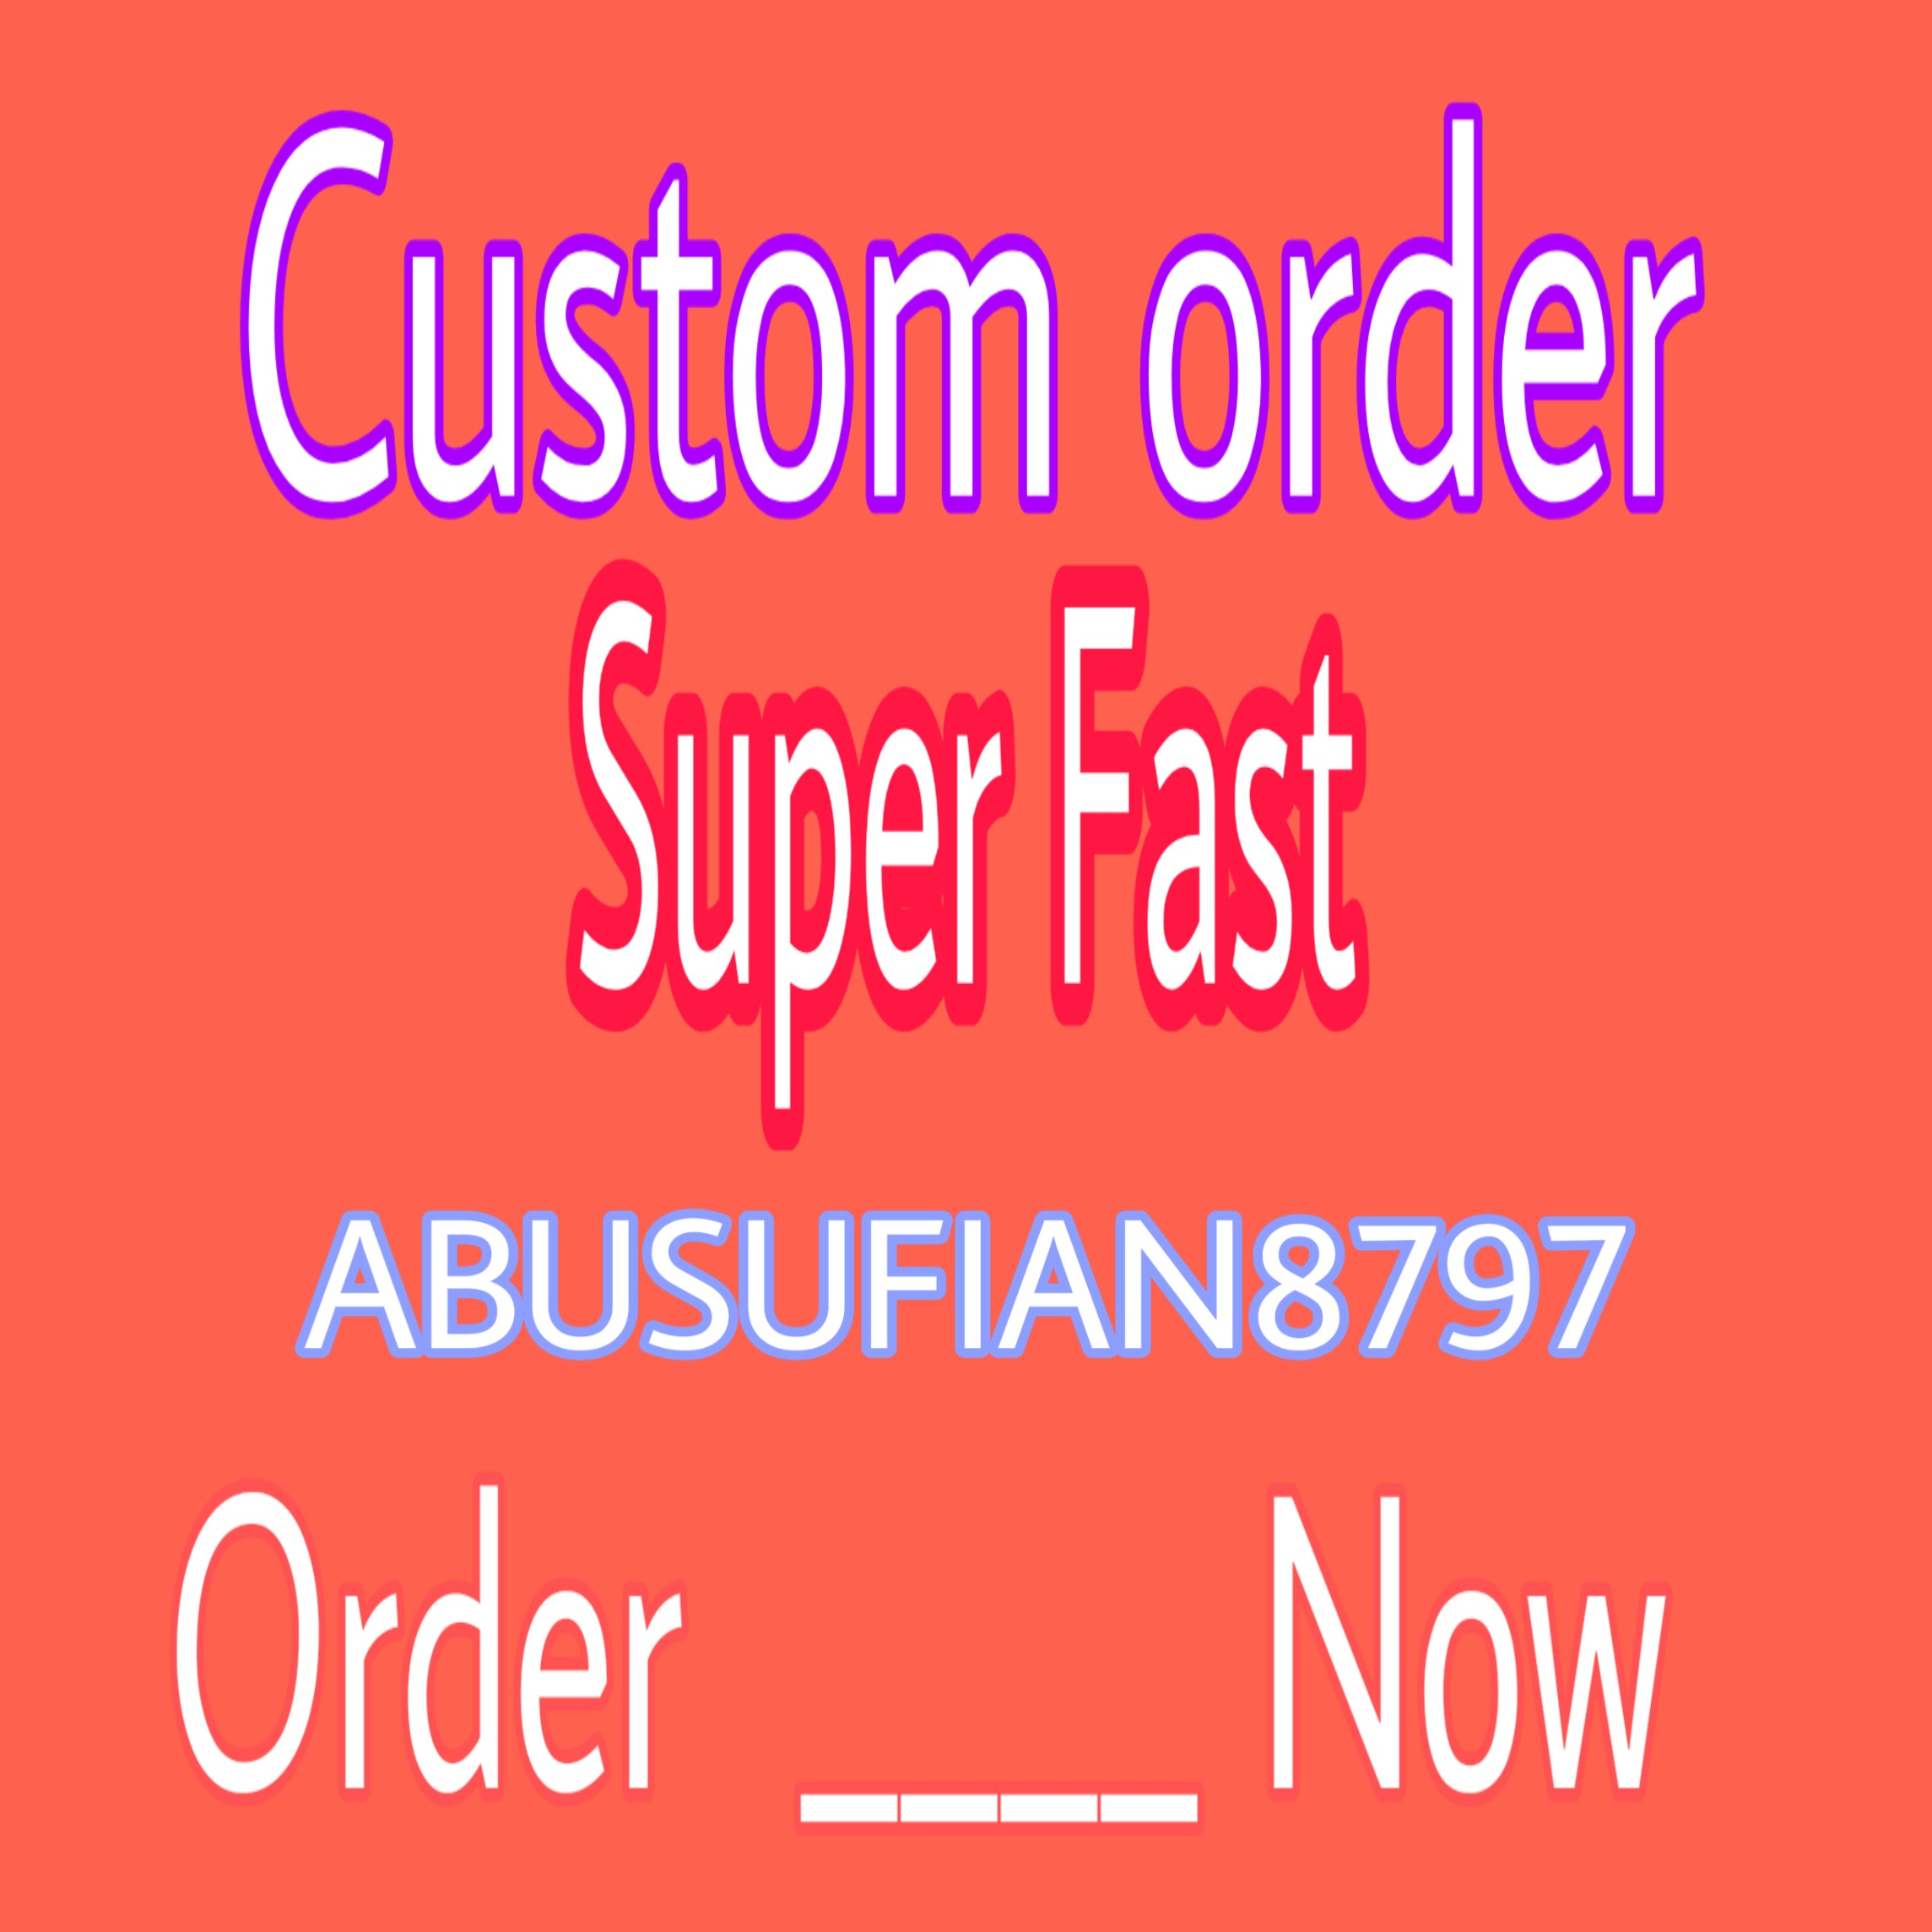 Natural Link or Customs order Any working